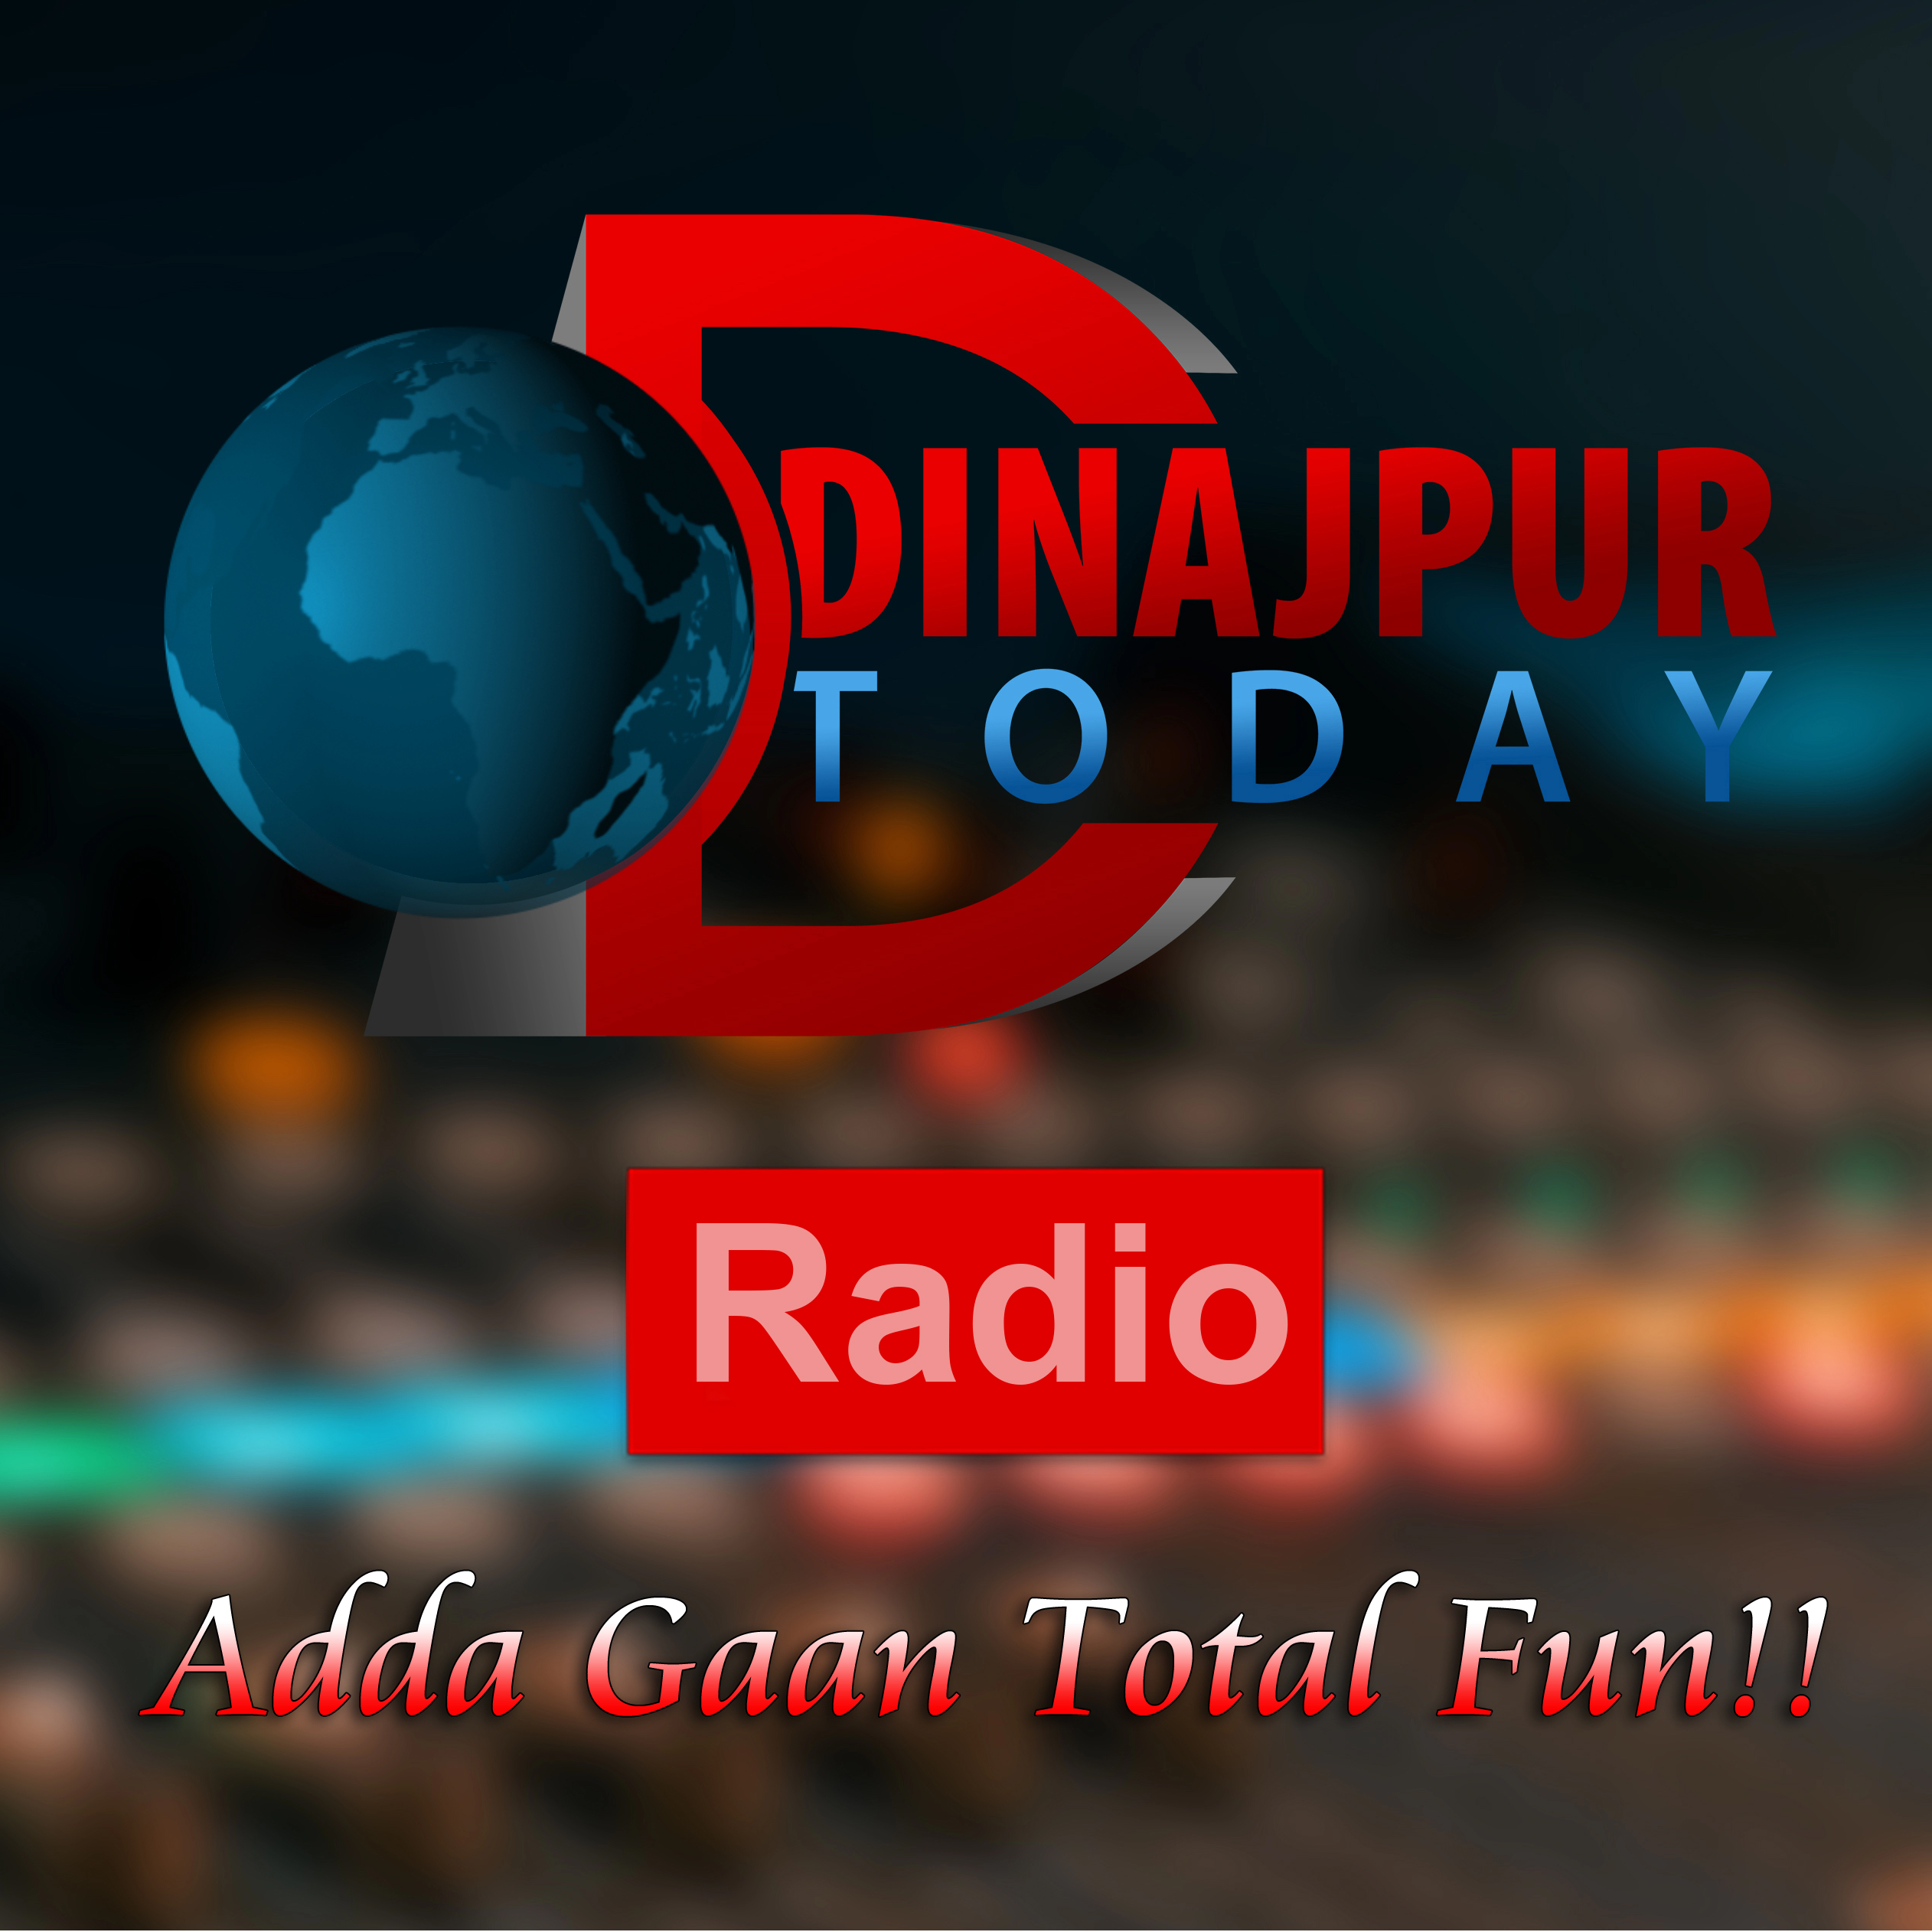 Dinajpur Today Radio